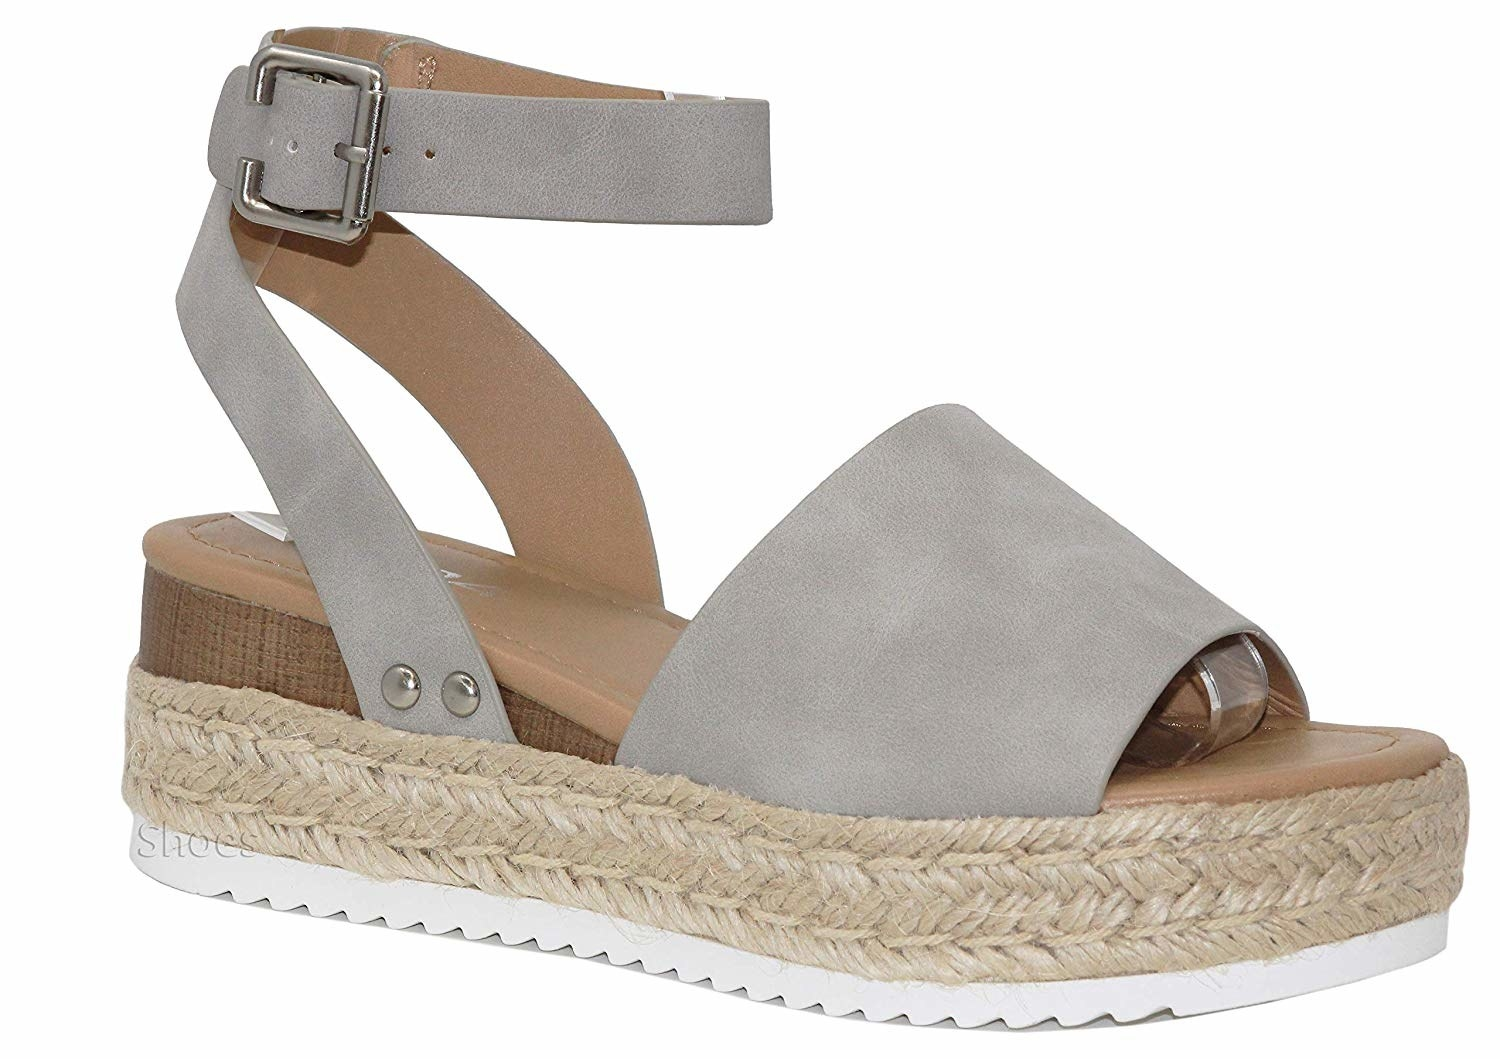 4c43f13169b56 27 Inexpensive Shoes You'll Want On Your Feet Right NOW